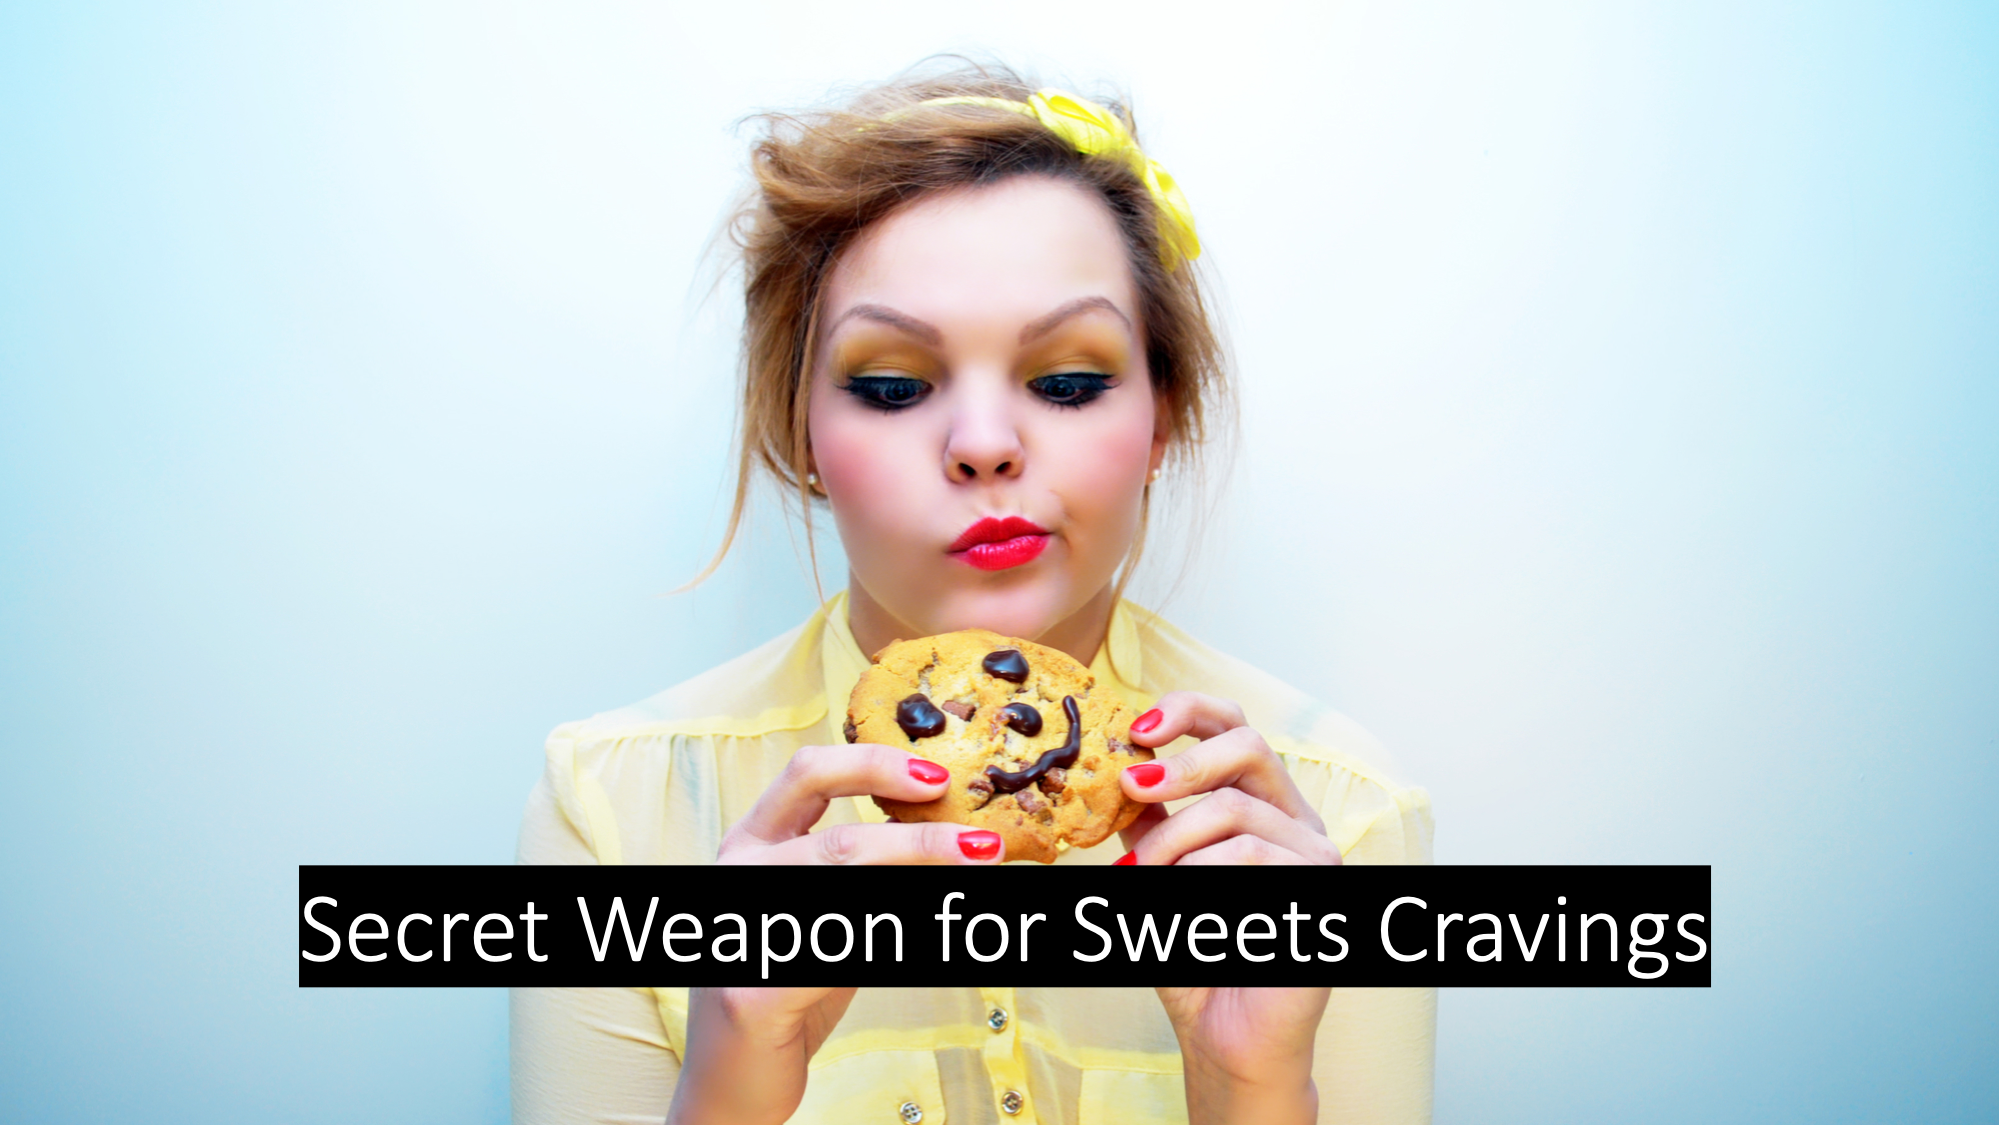 #1 Sweets Cravings Secret: Scientifically Conquer Cravings